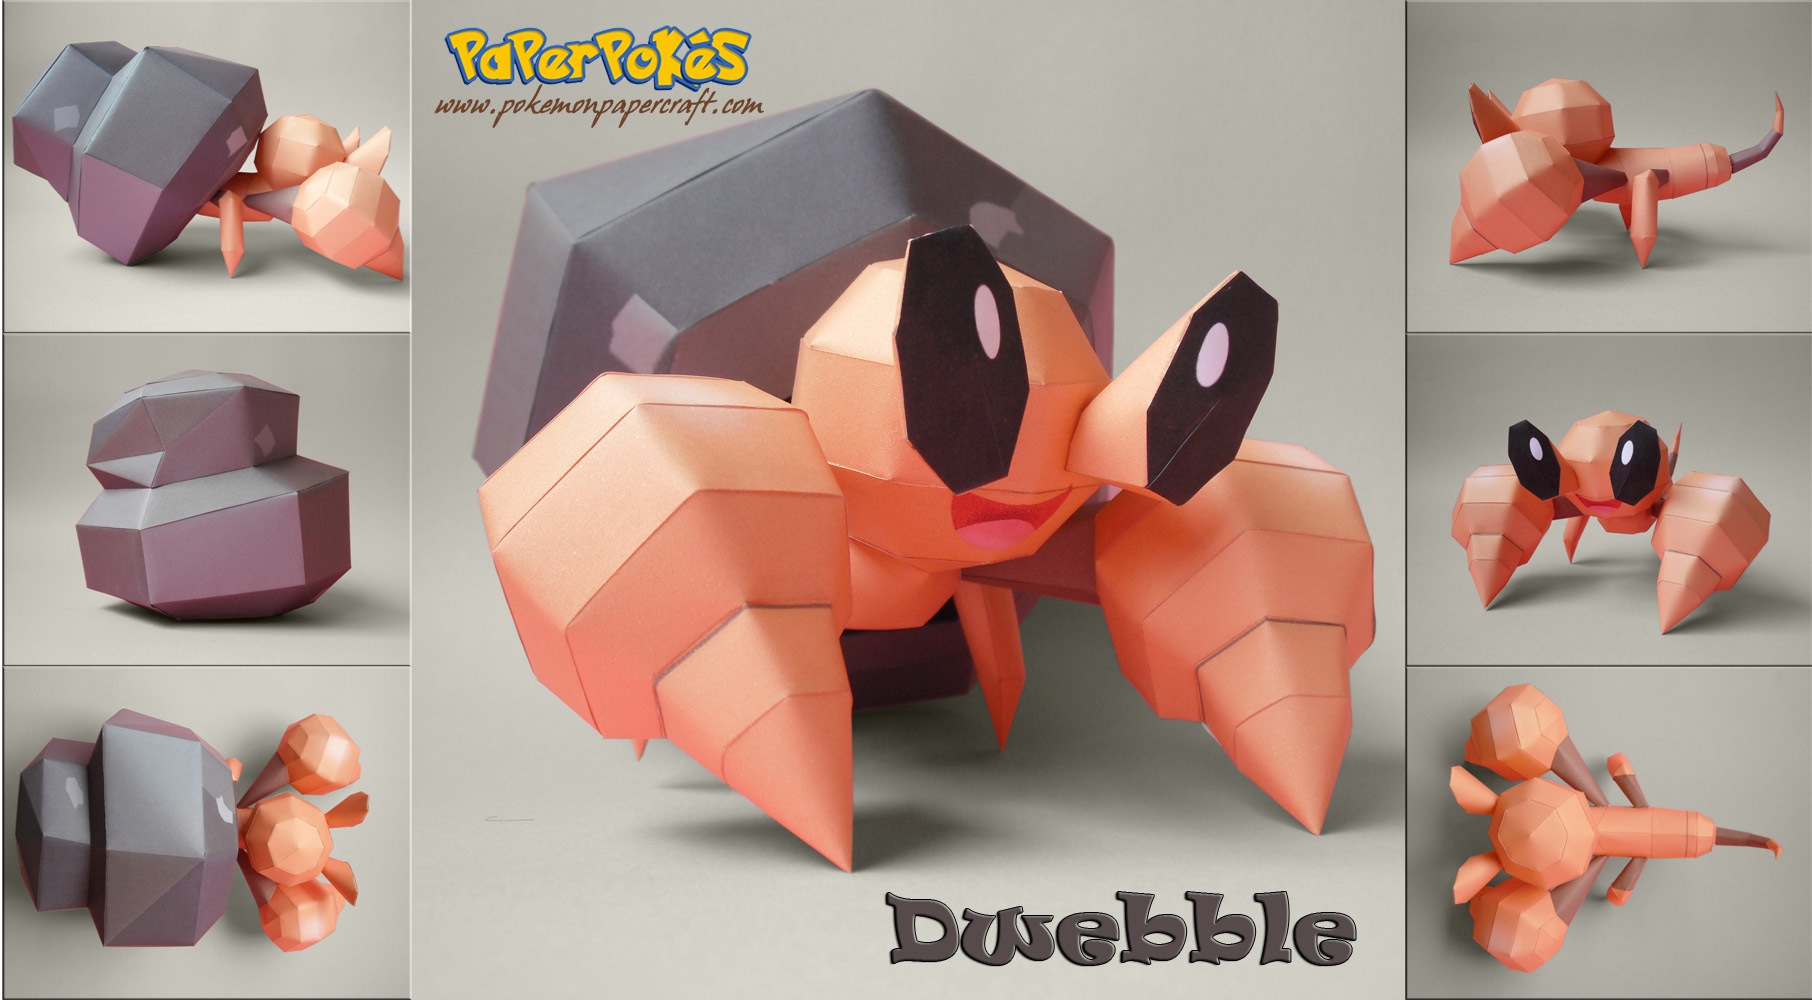 Dwebble Papercraft by Olber-Correa